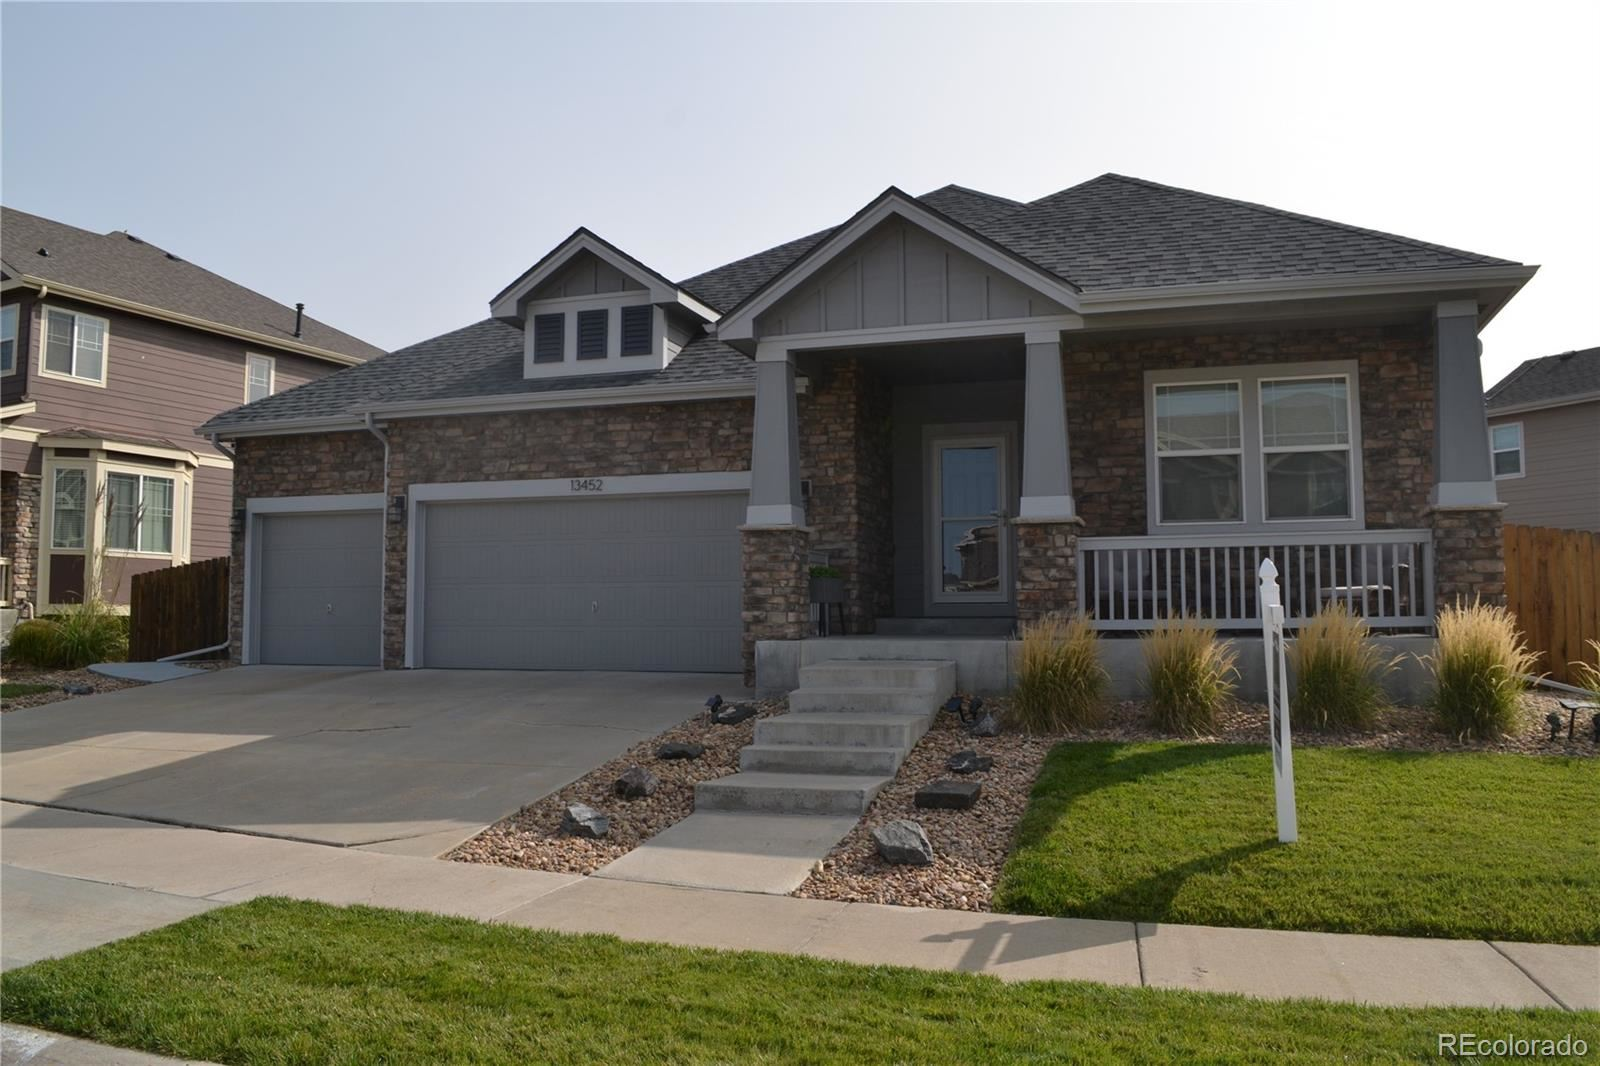 13452 Tamarac Place, Thornton, CO 80602 - MLS#: 7157001